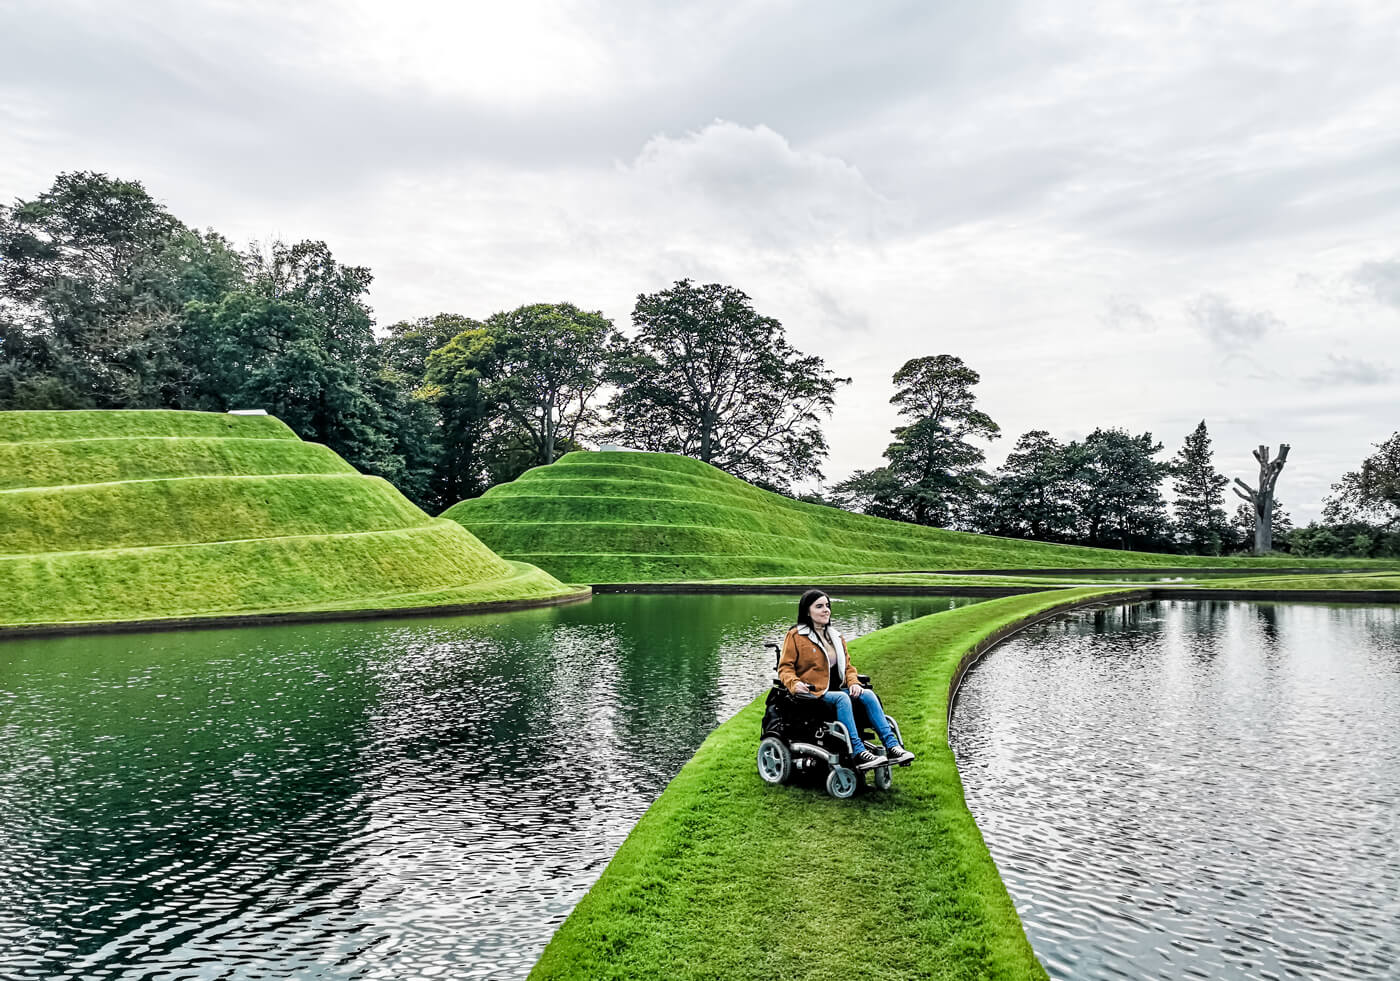 Emma is sitting in her powered wheelchair on a strip of grass with water on each side of her. Behind her is giant swirly mounds of grass shaped like pyramids.